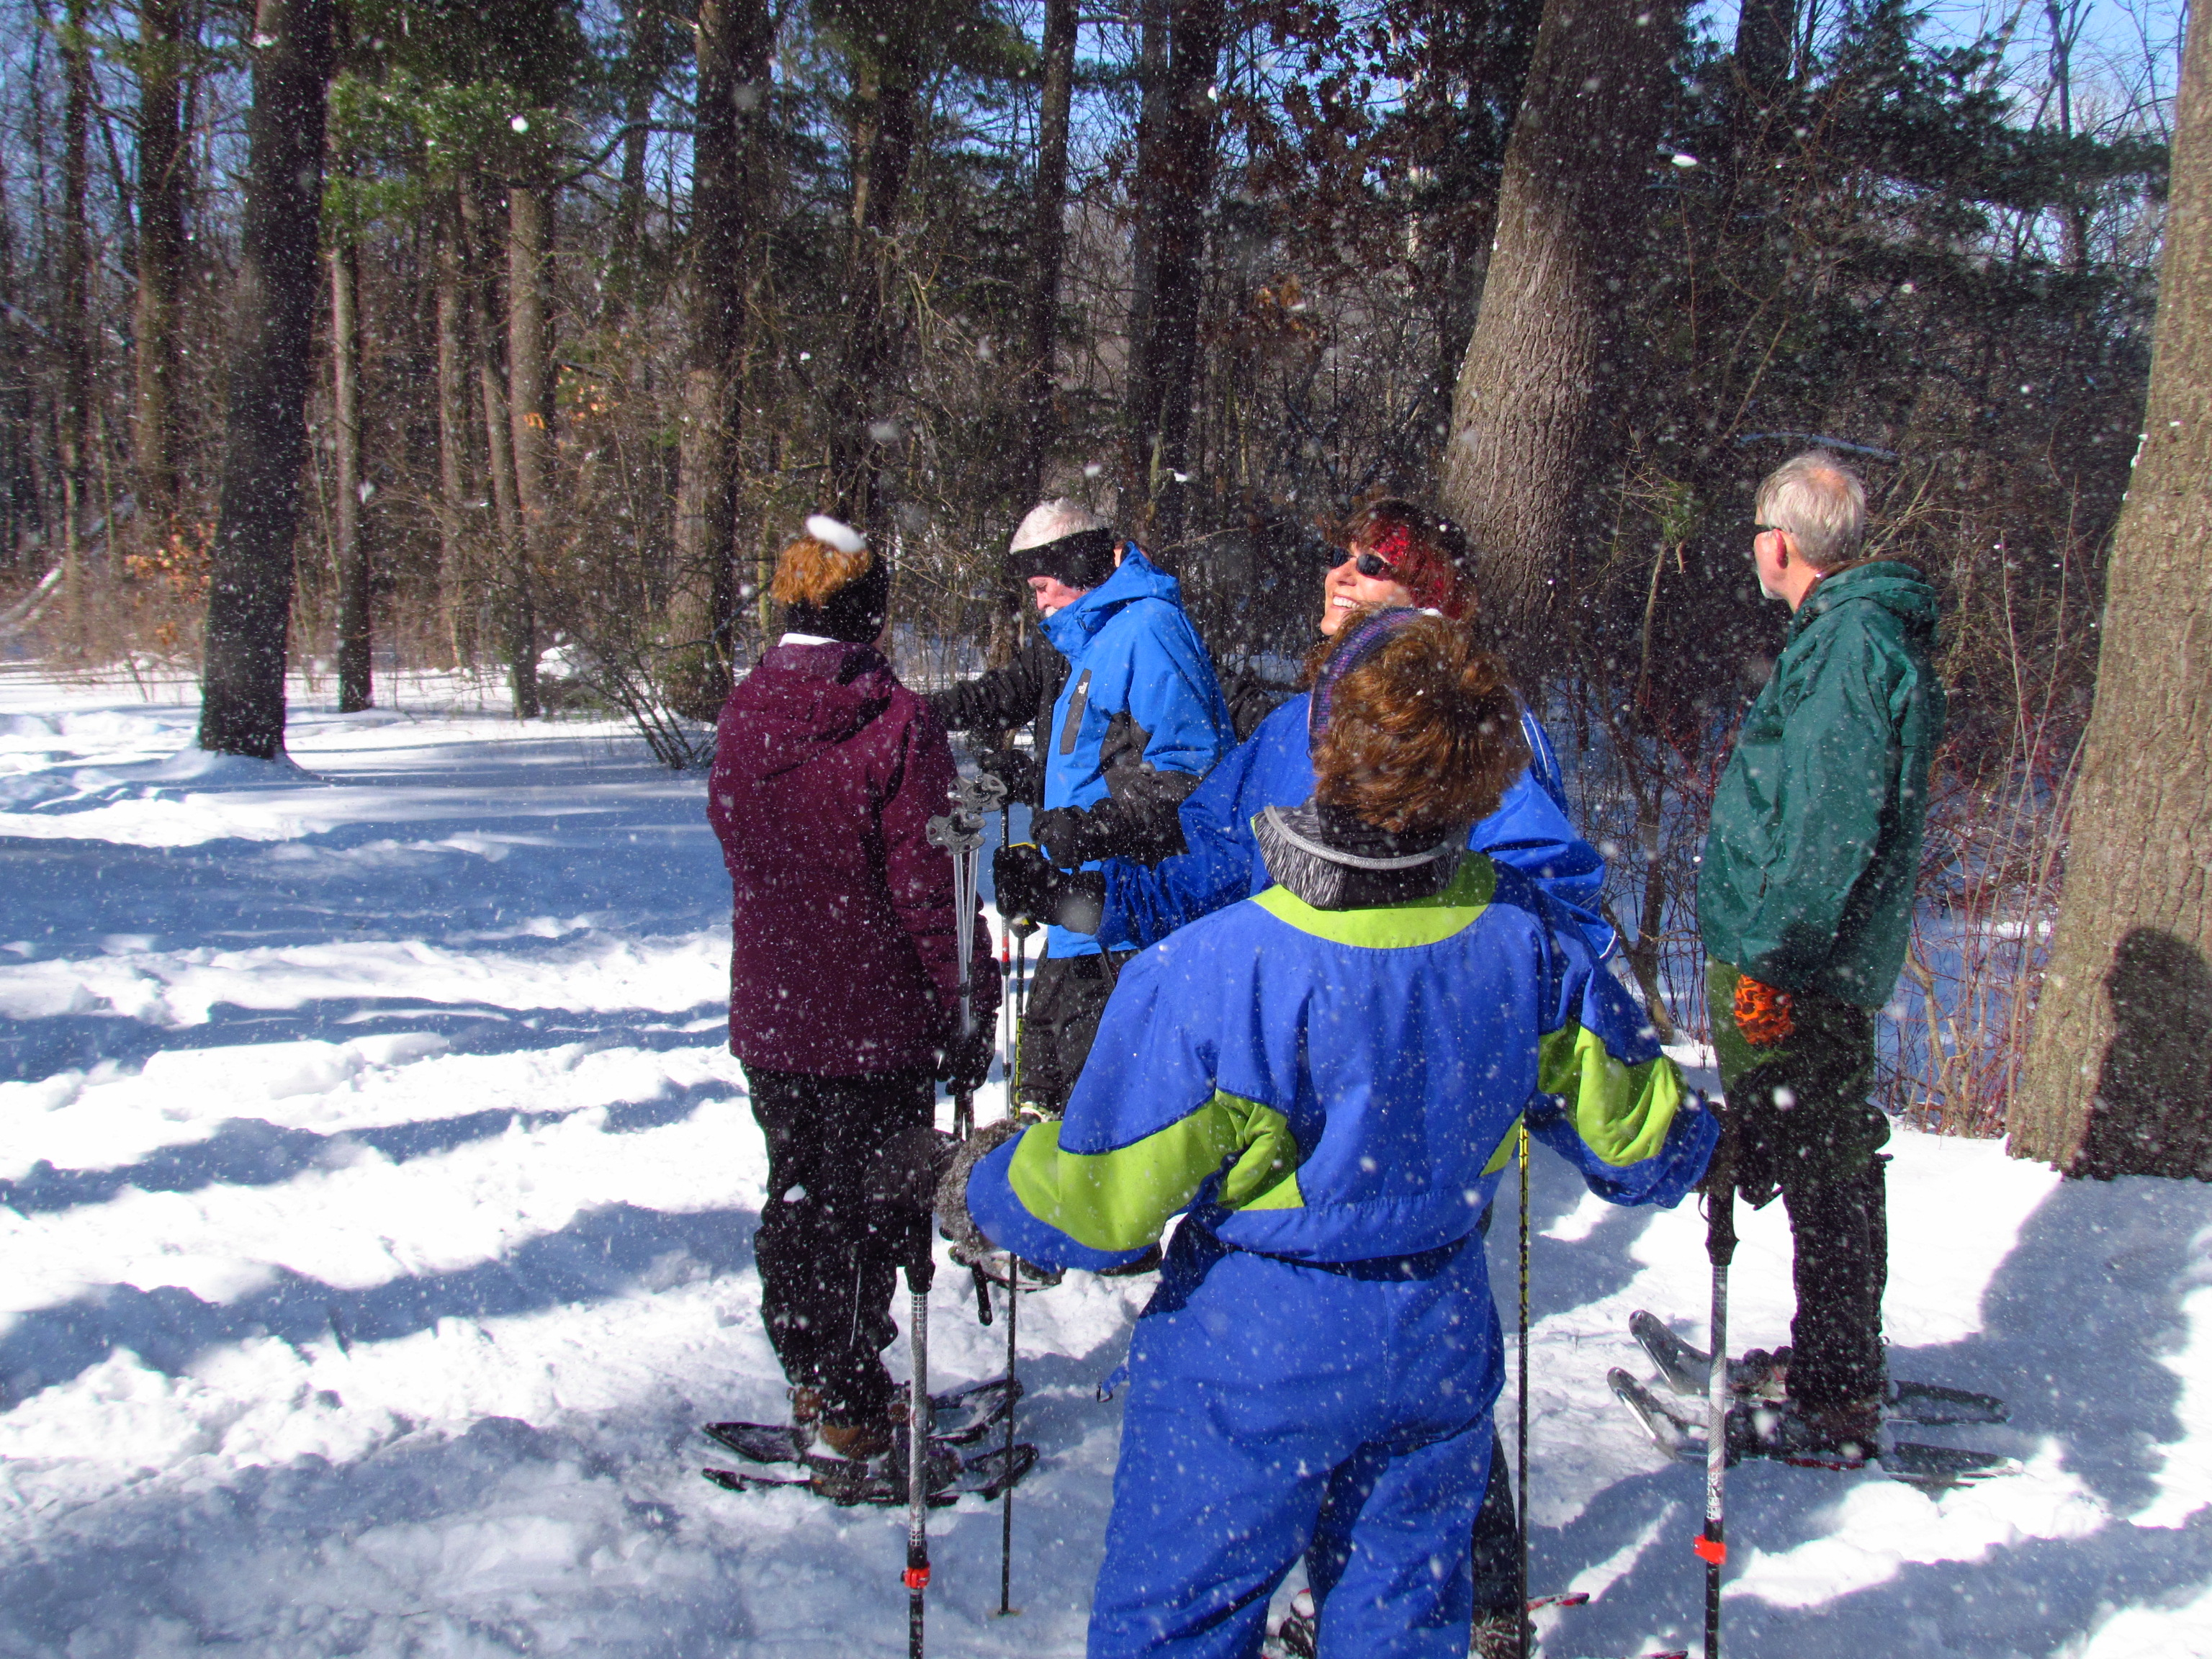 A group of snowshoers and cross-country skiers stand in the snowy forest